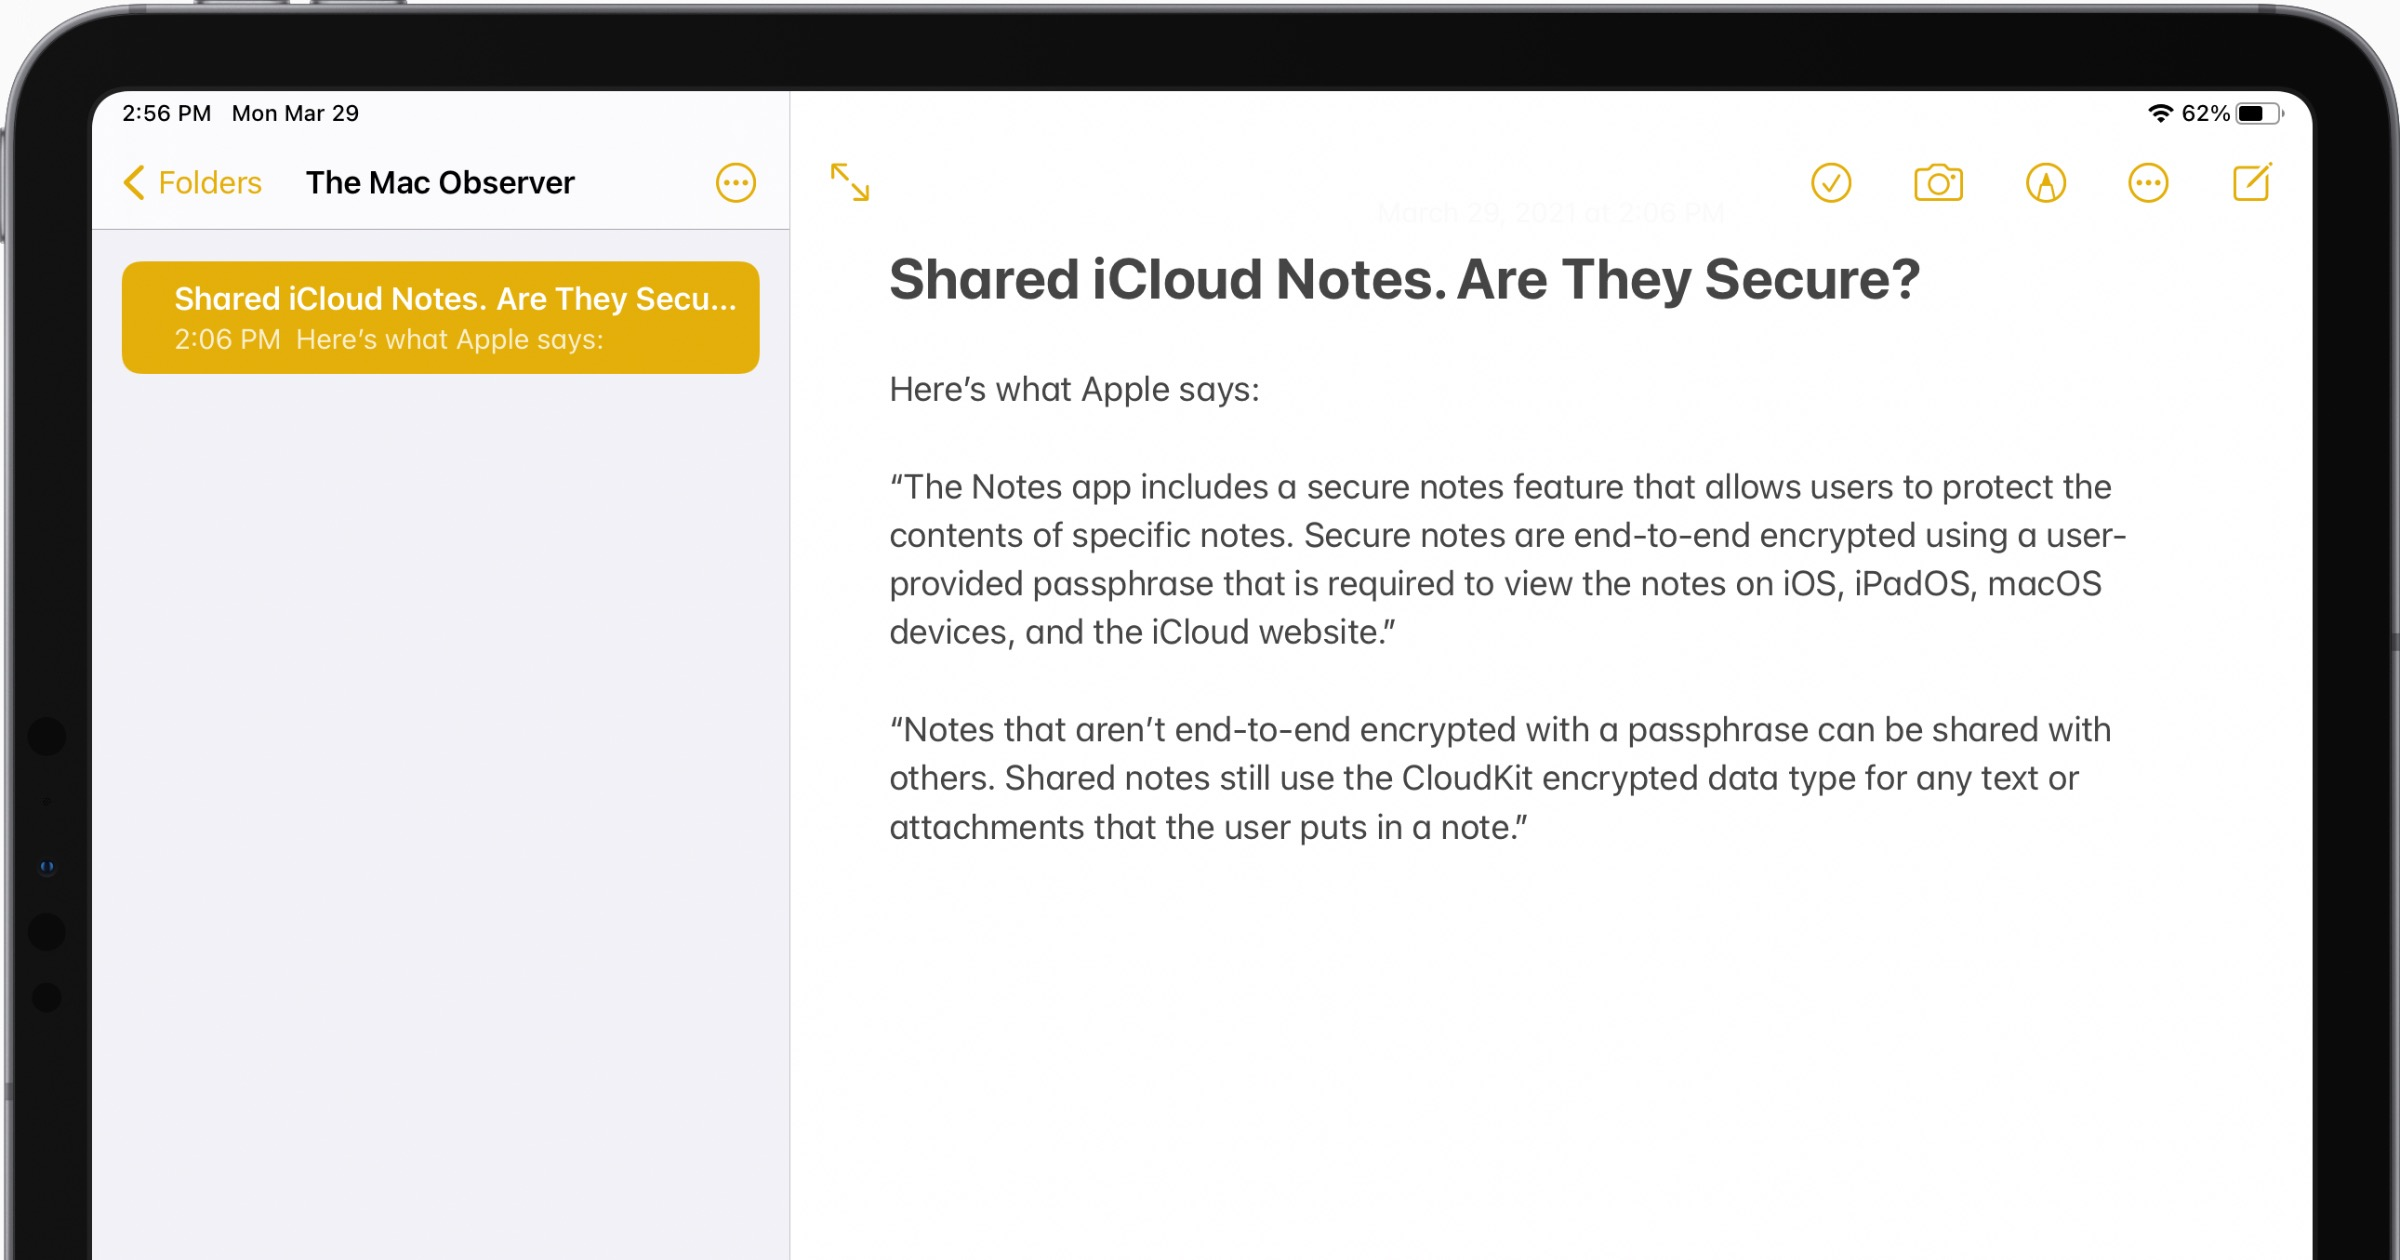 Shared icloud notes